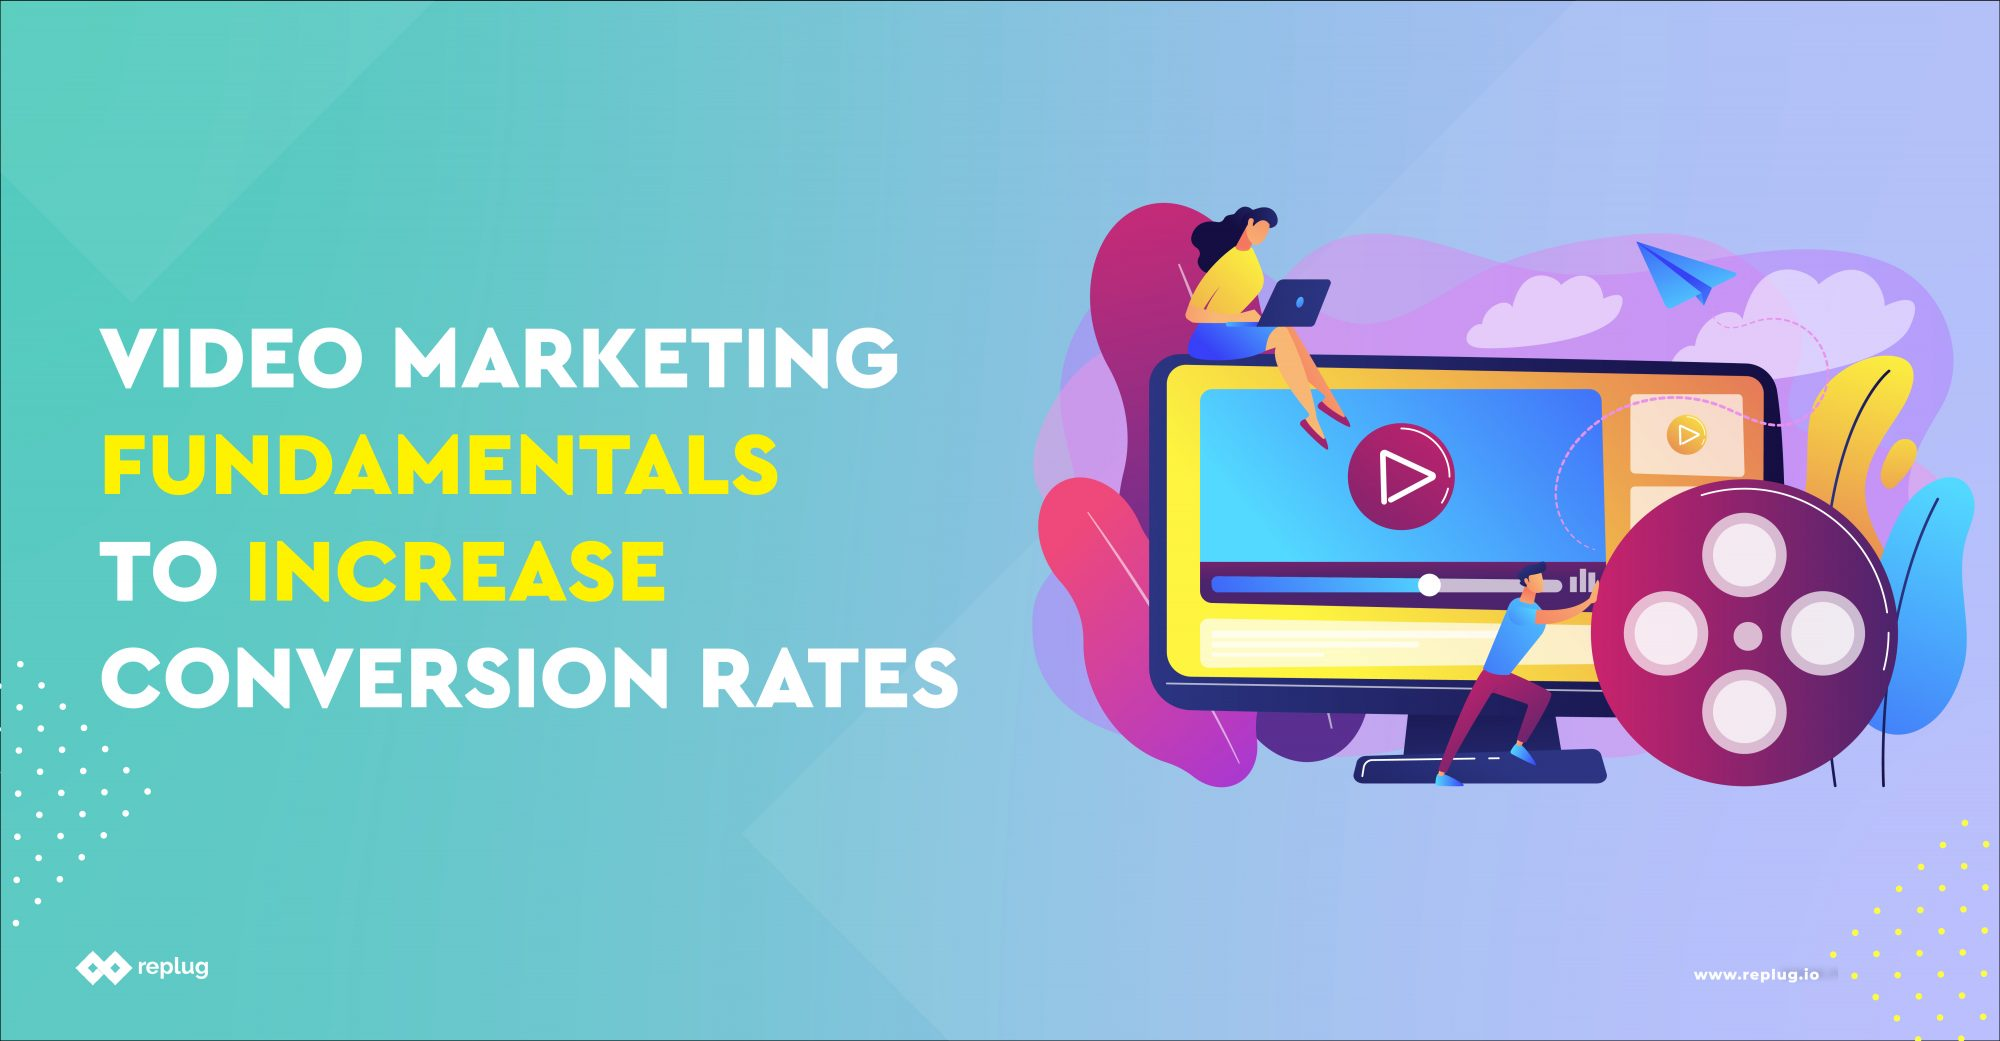 Video Marketing to Increase Conversion Rates